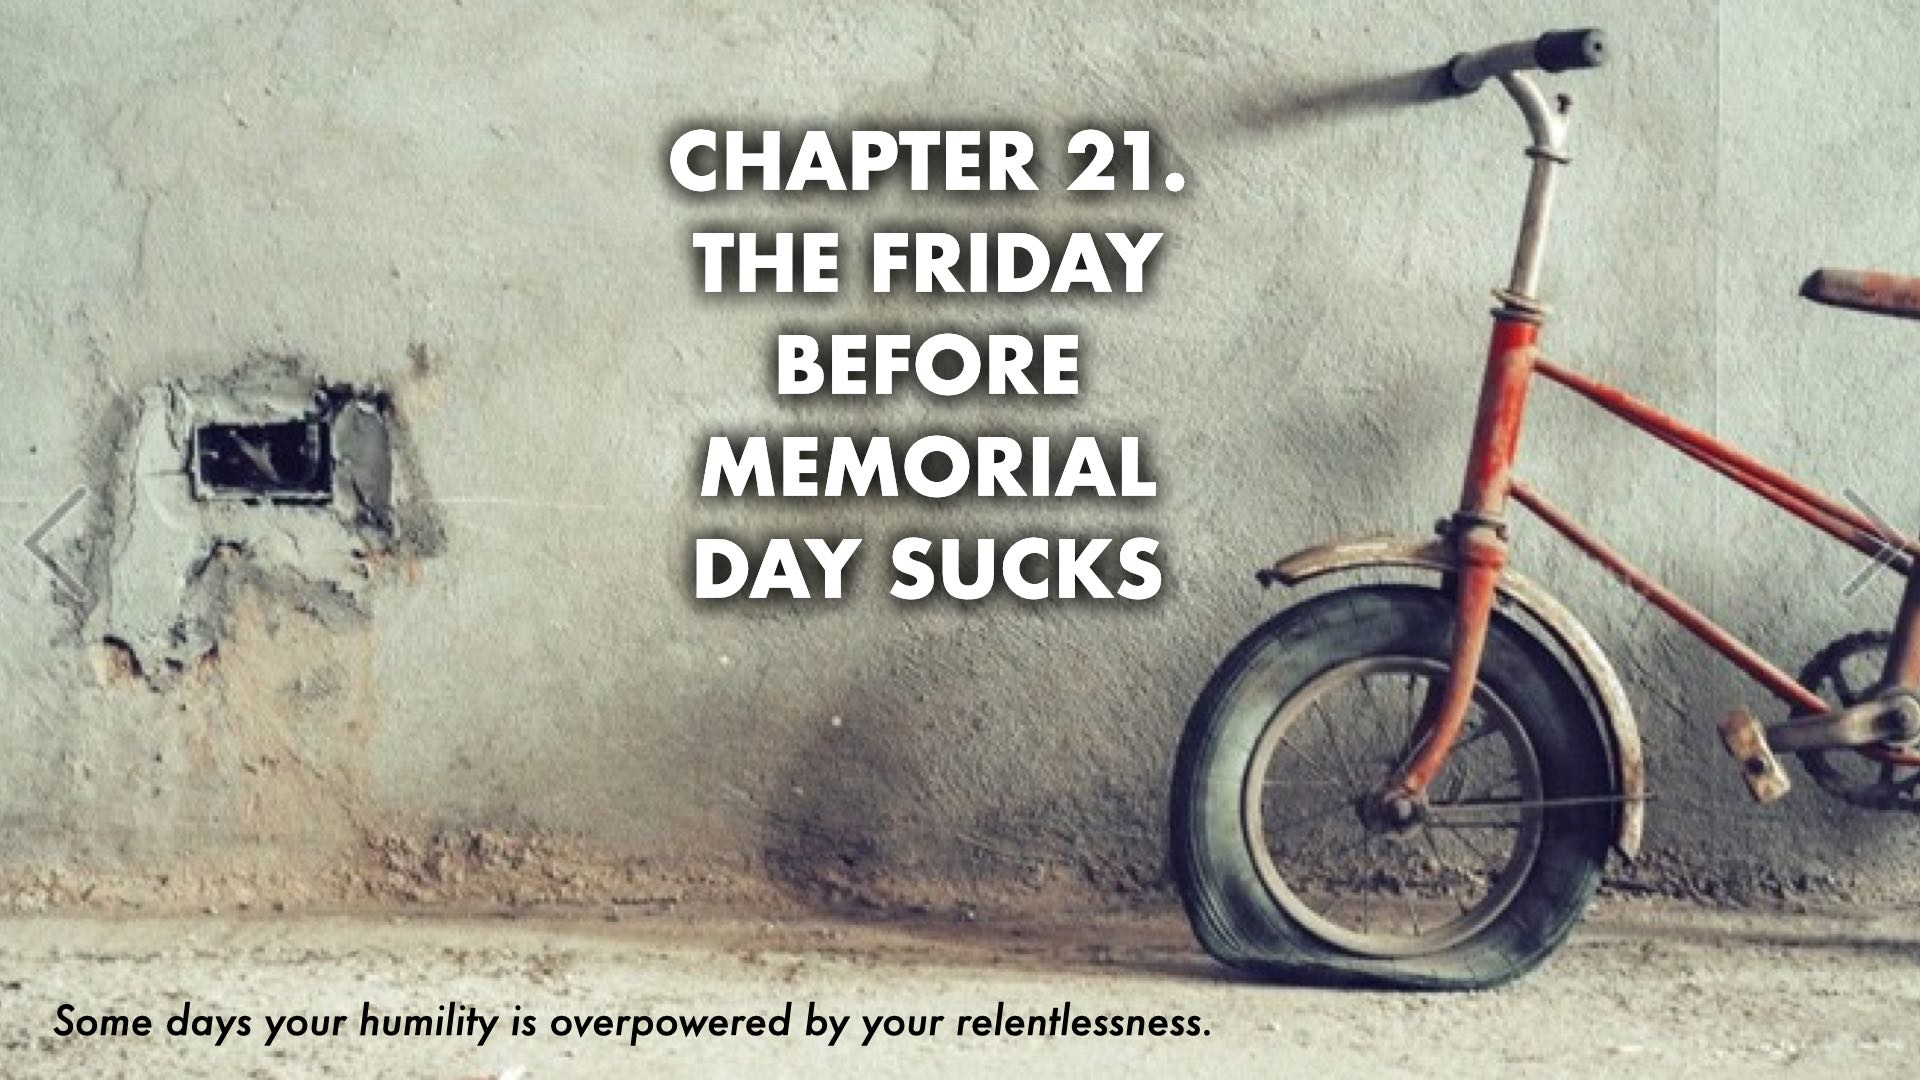 The Friday Before Memorial Day Sucks